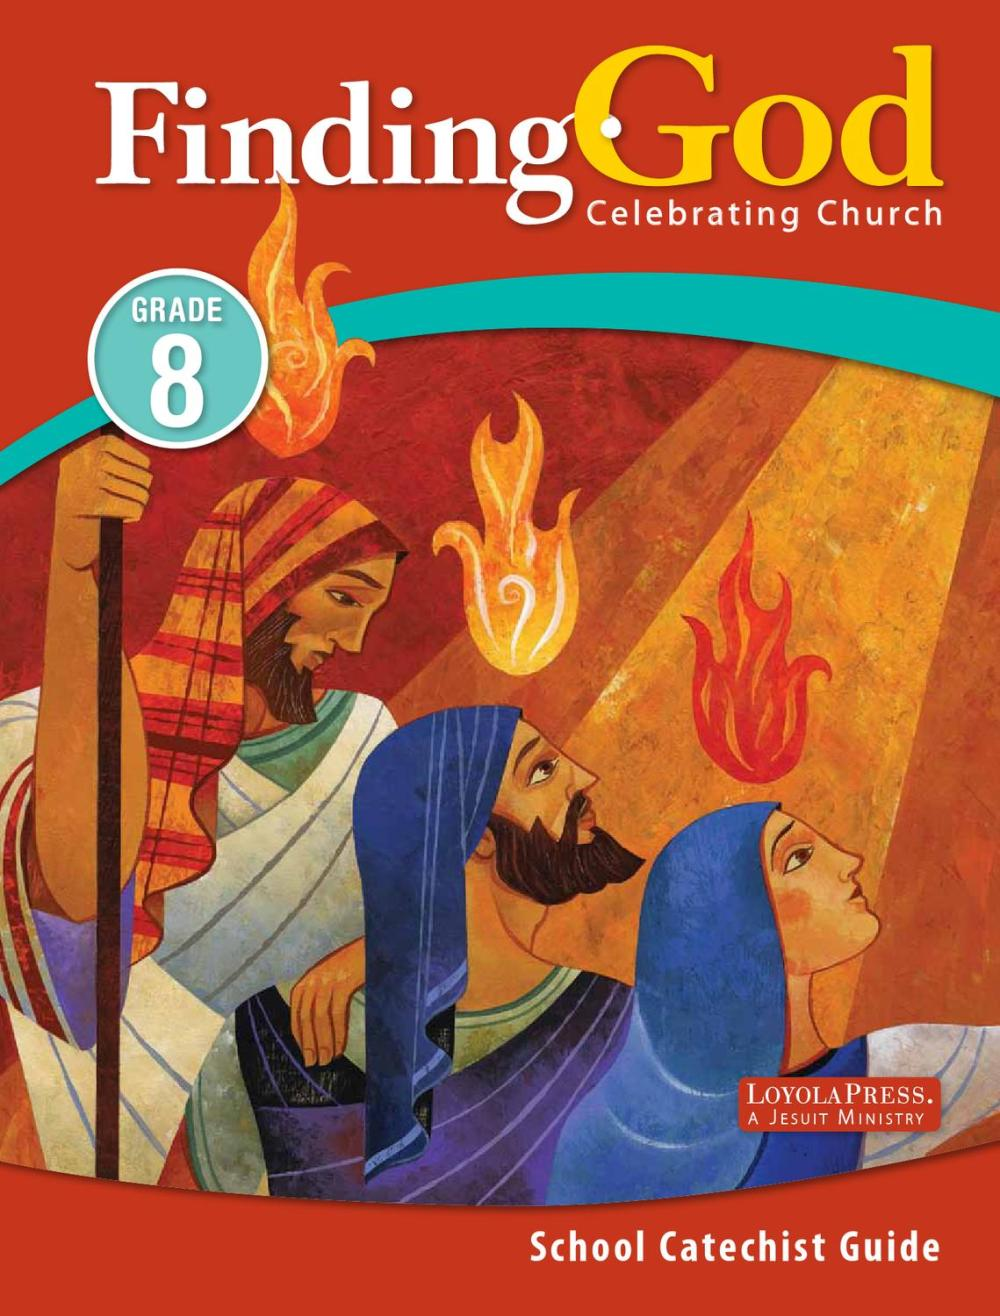 medium resolution of Finding God 2013 Grade 8 School Catechist Guide   PART 1 by Loyola Press -  issuu